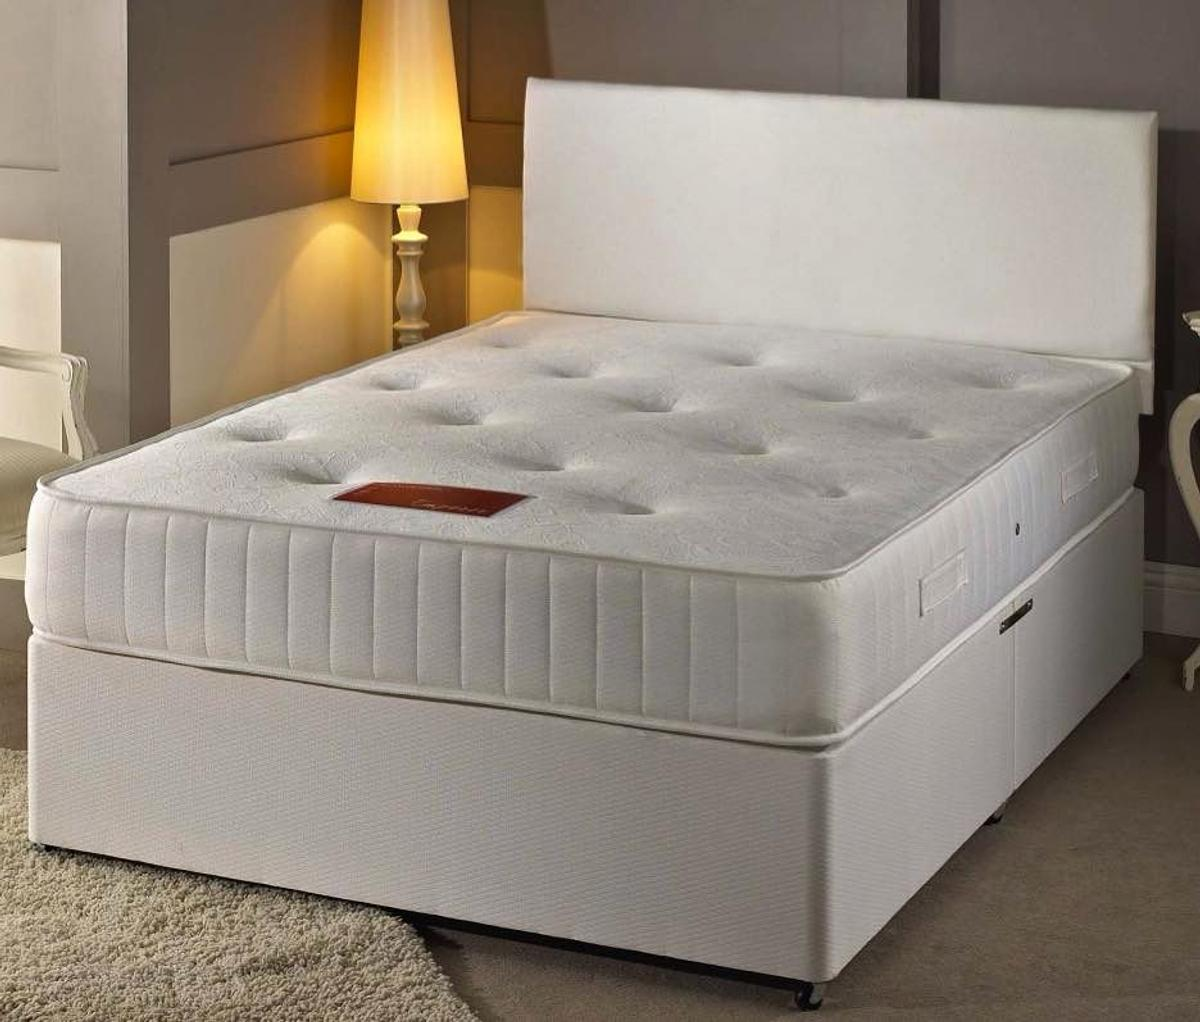 Brand New White Leather Divan Beds On Sale In B1 Birmingham For 100 00 For Sale Shpock